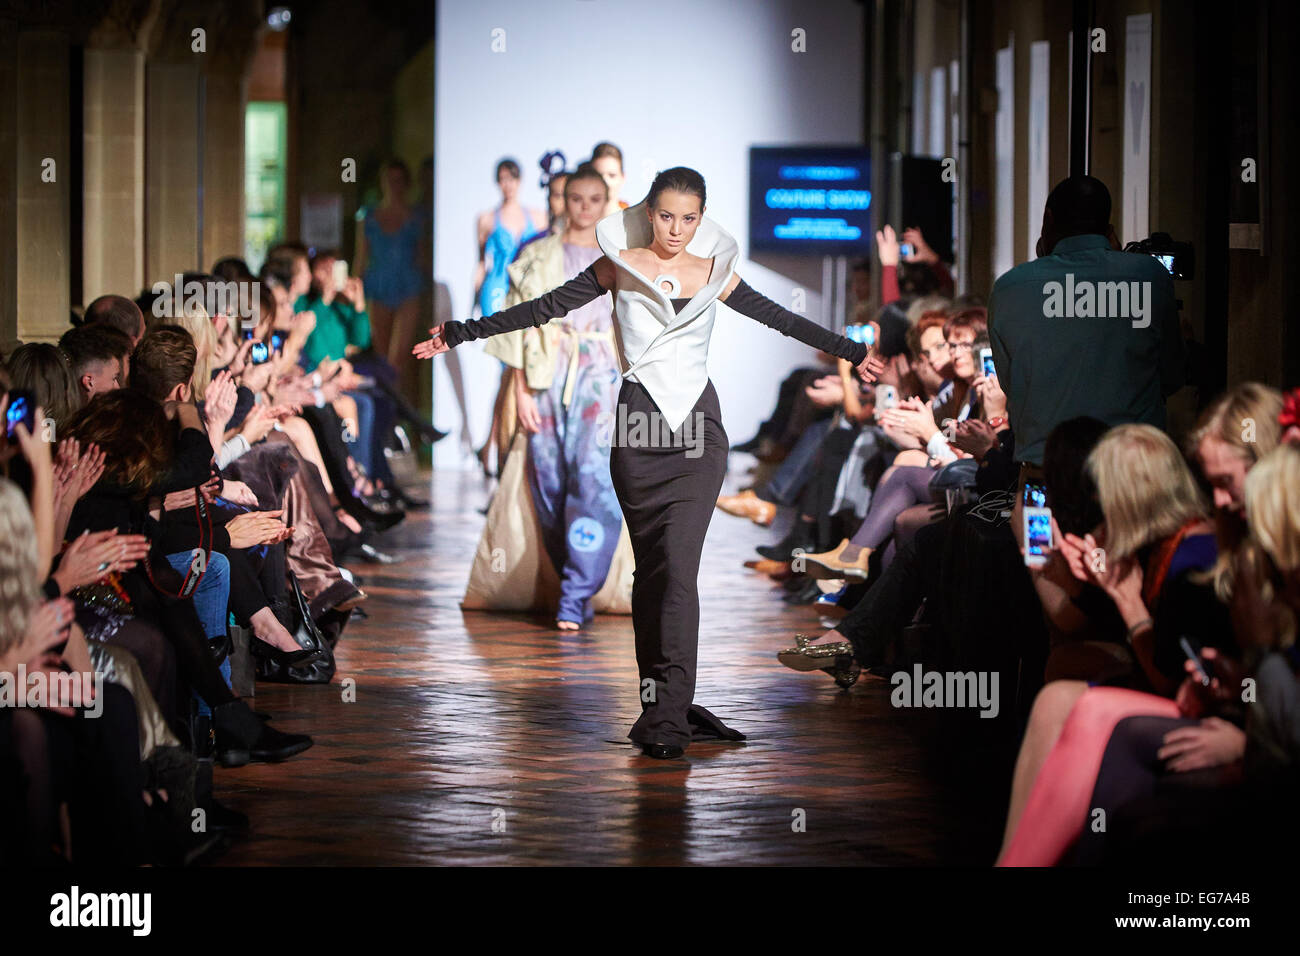 Models on the catwalk at Oxford Fashion Week - Stock Image